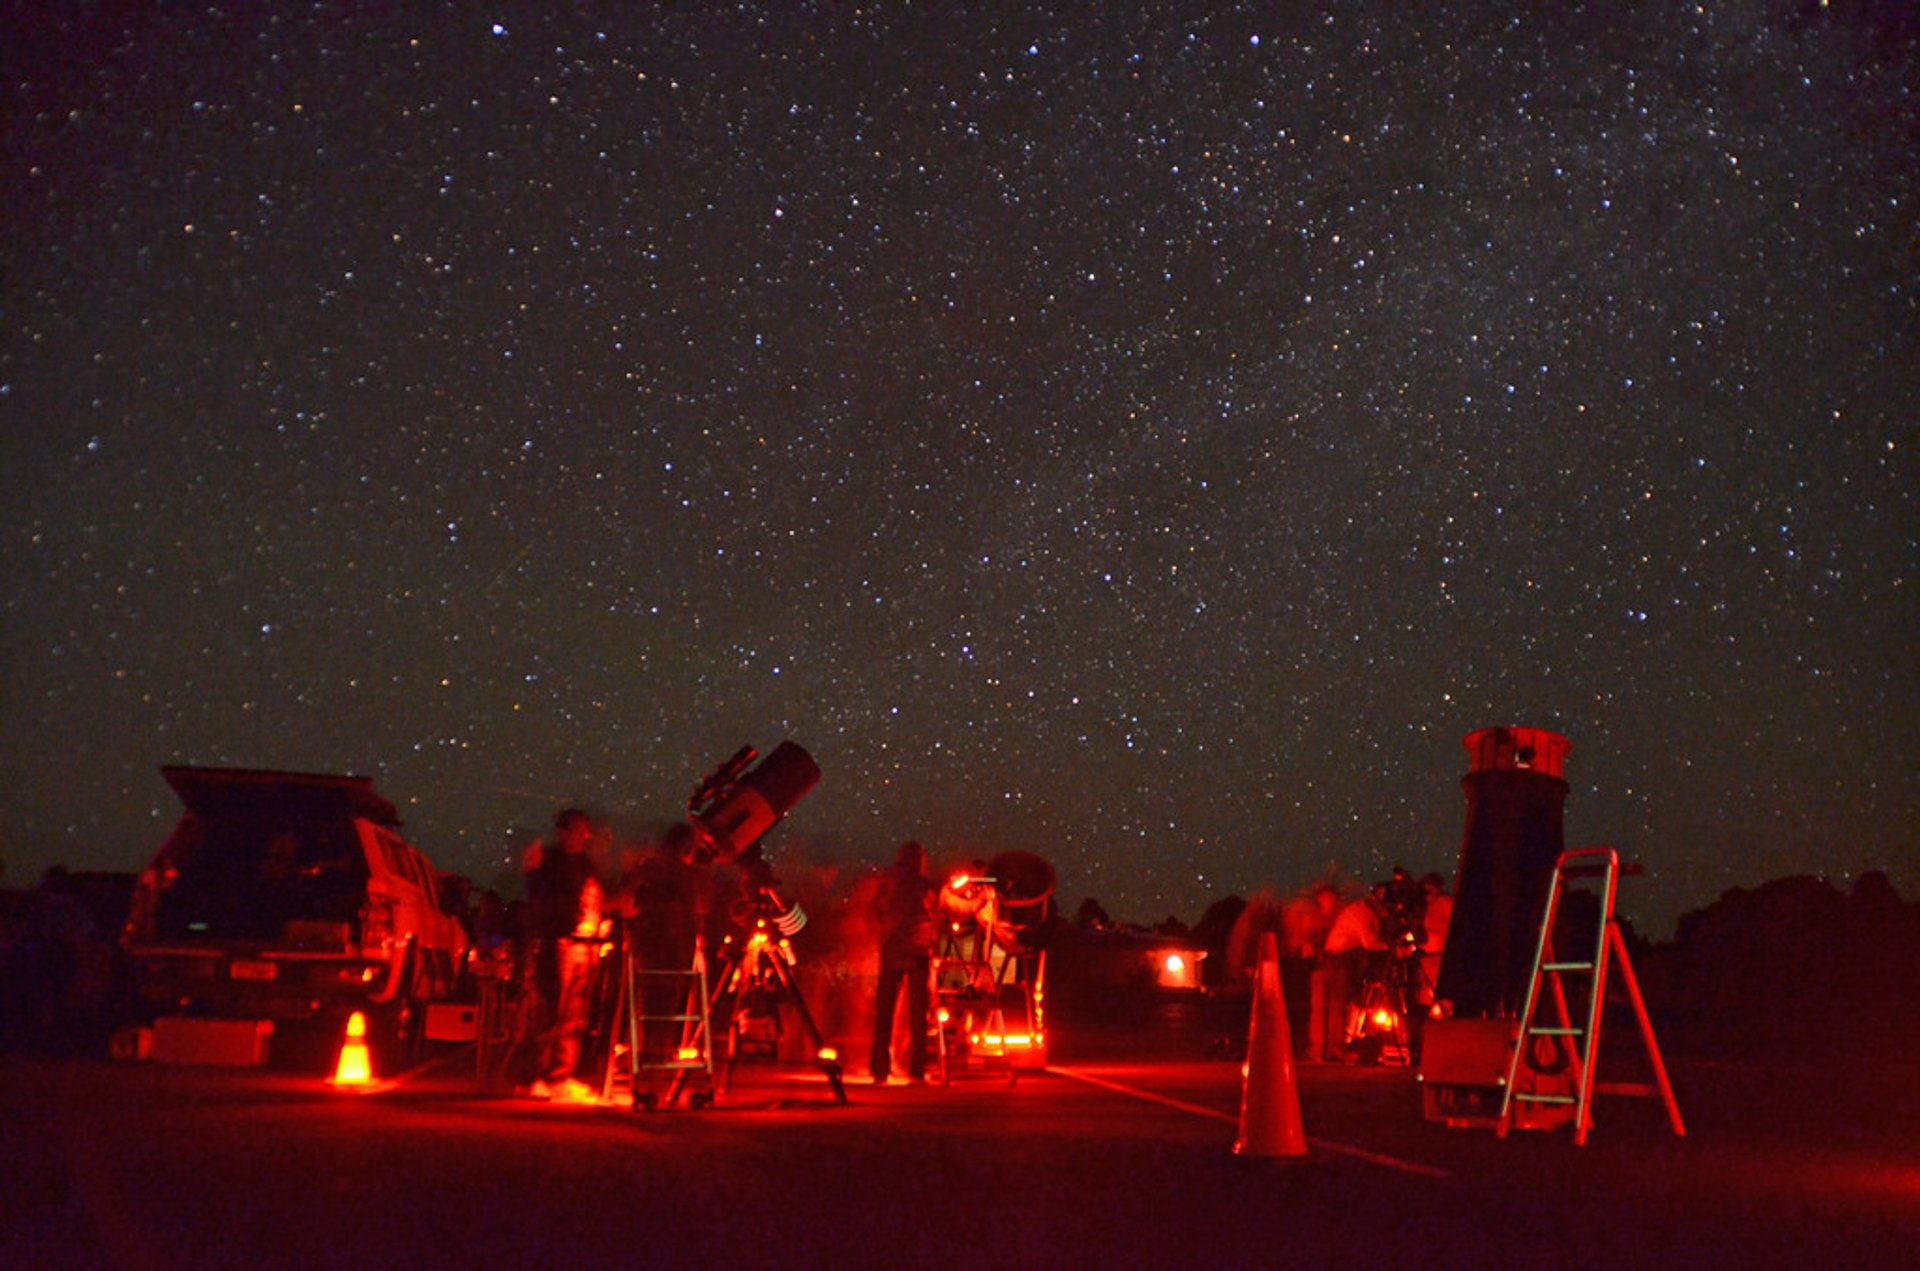 Grand Canyon Star Party in Grand Canyon 2019 - Best Time